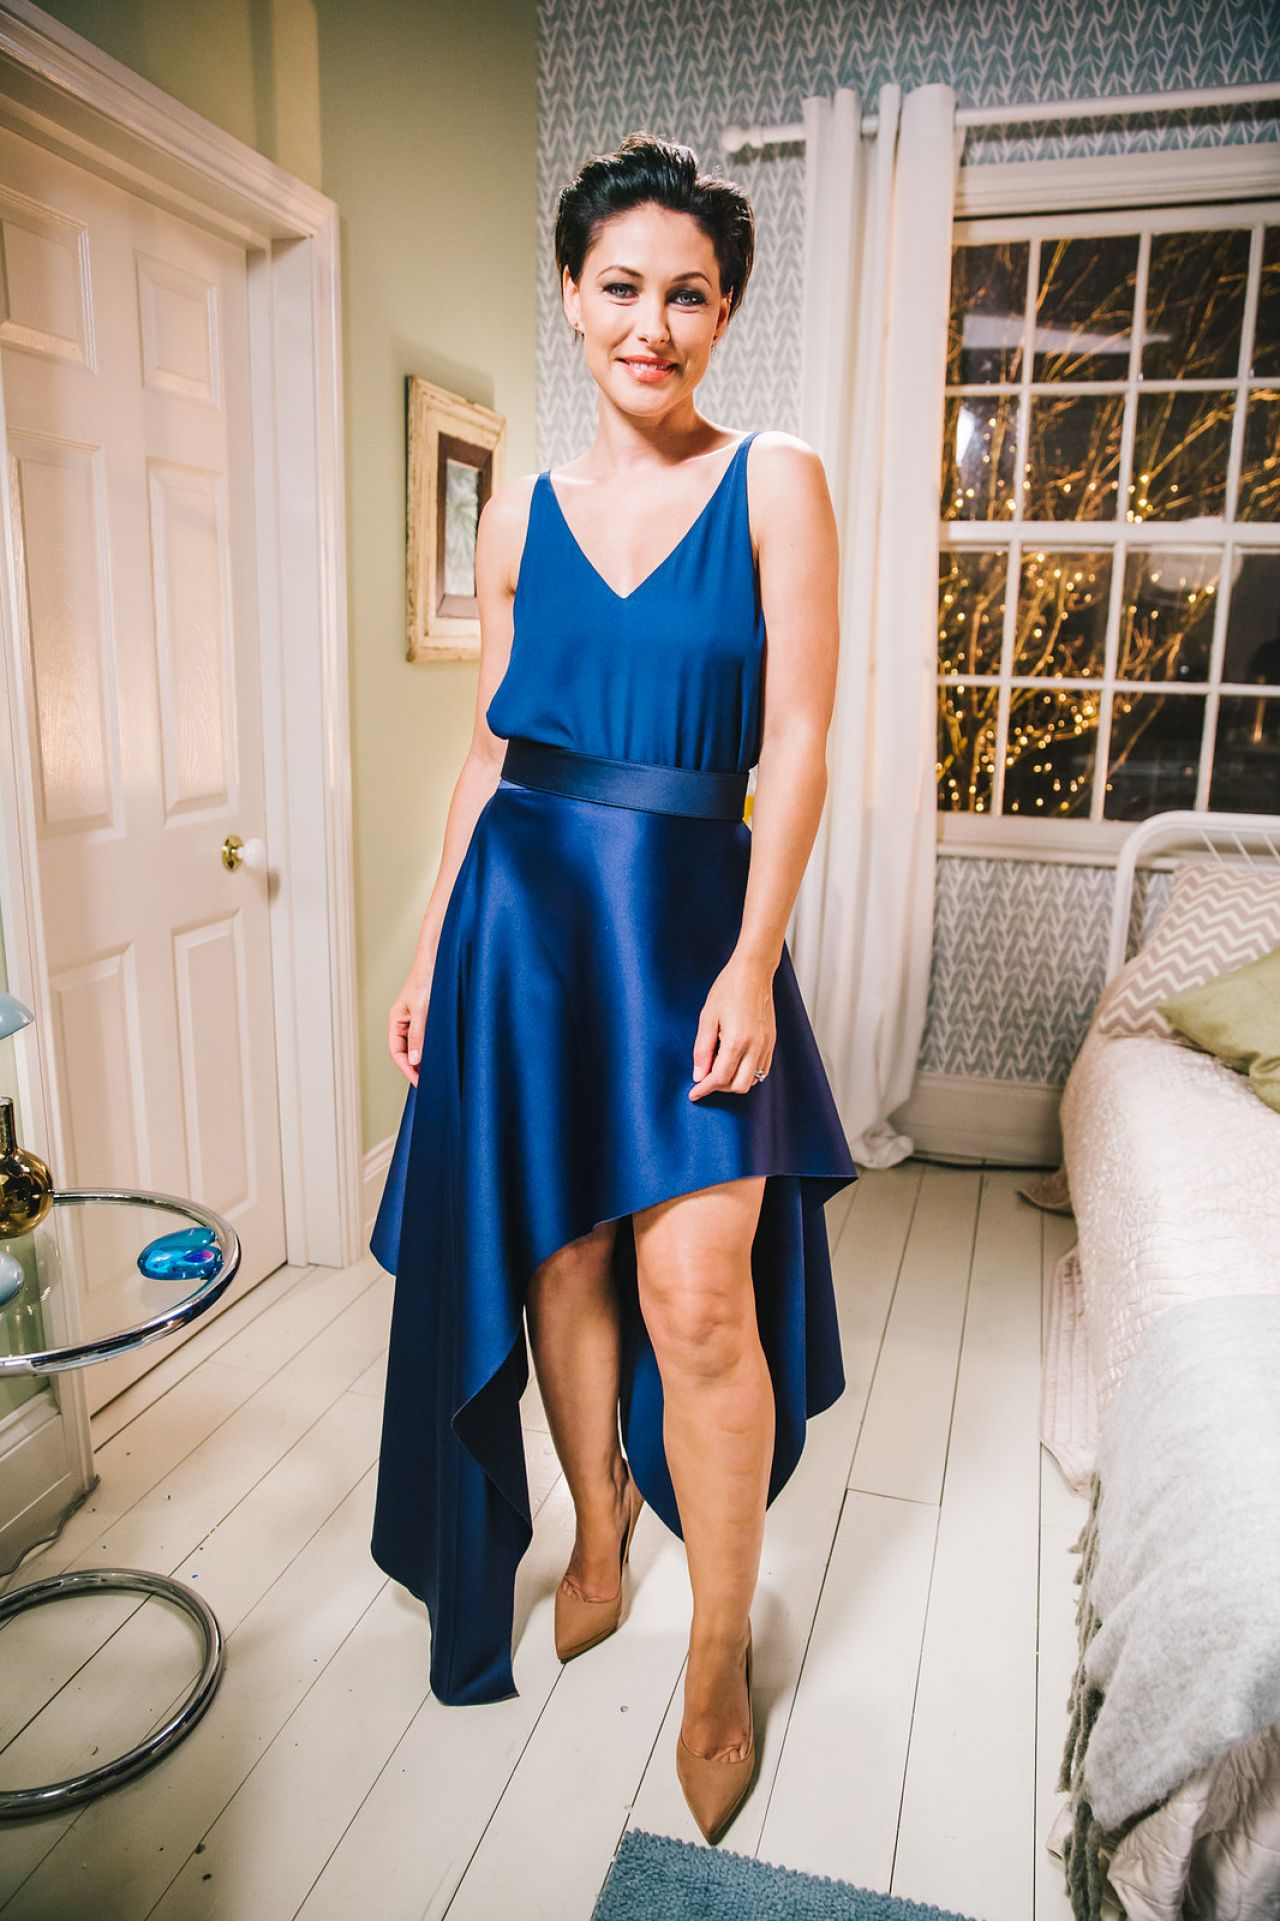 Emma Willis Photoshoot 2018